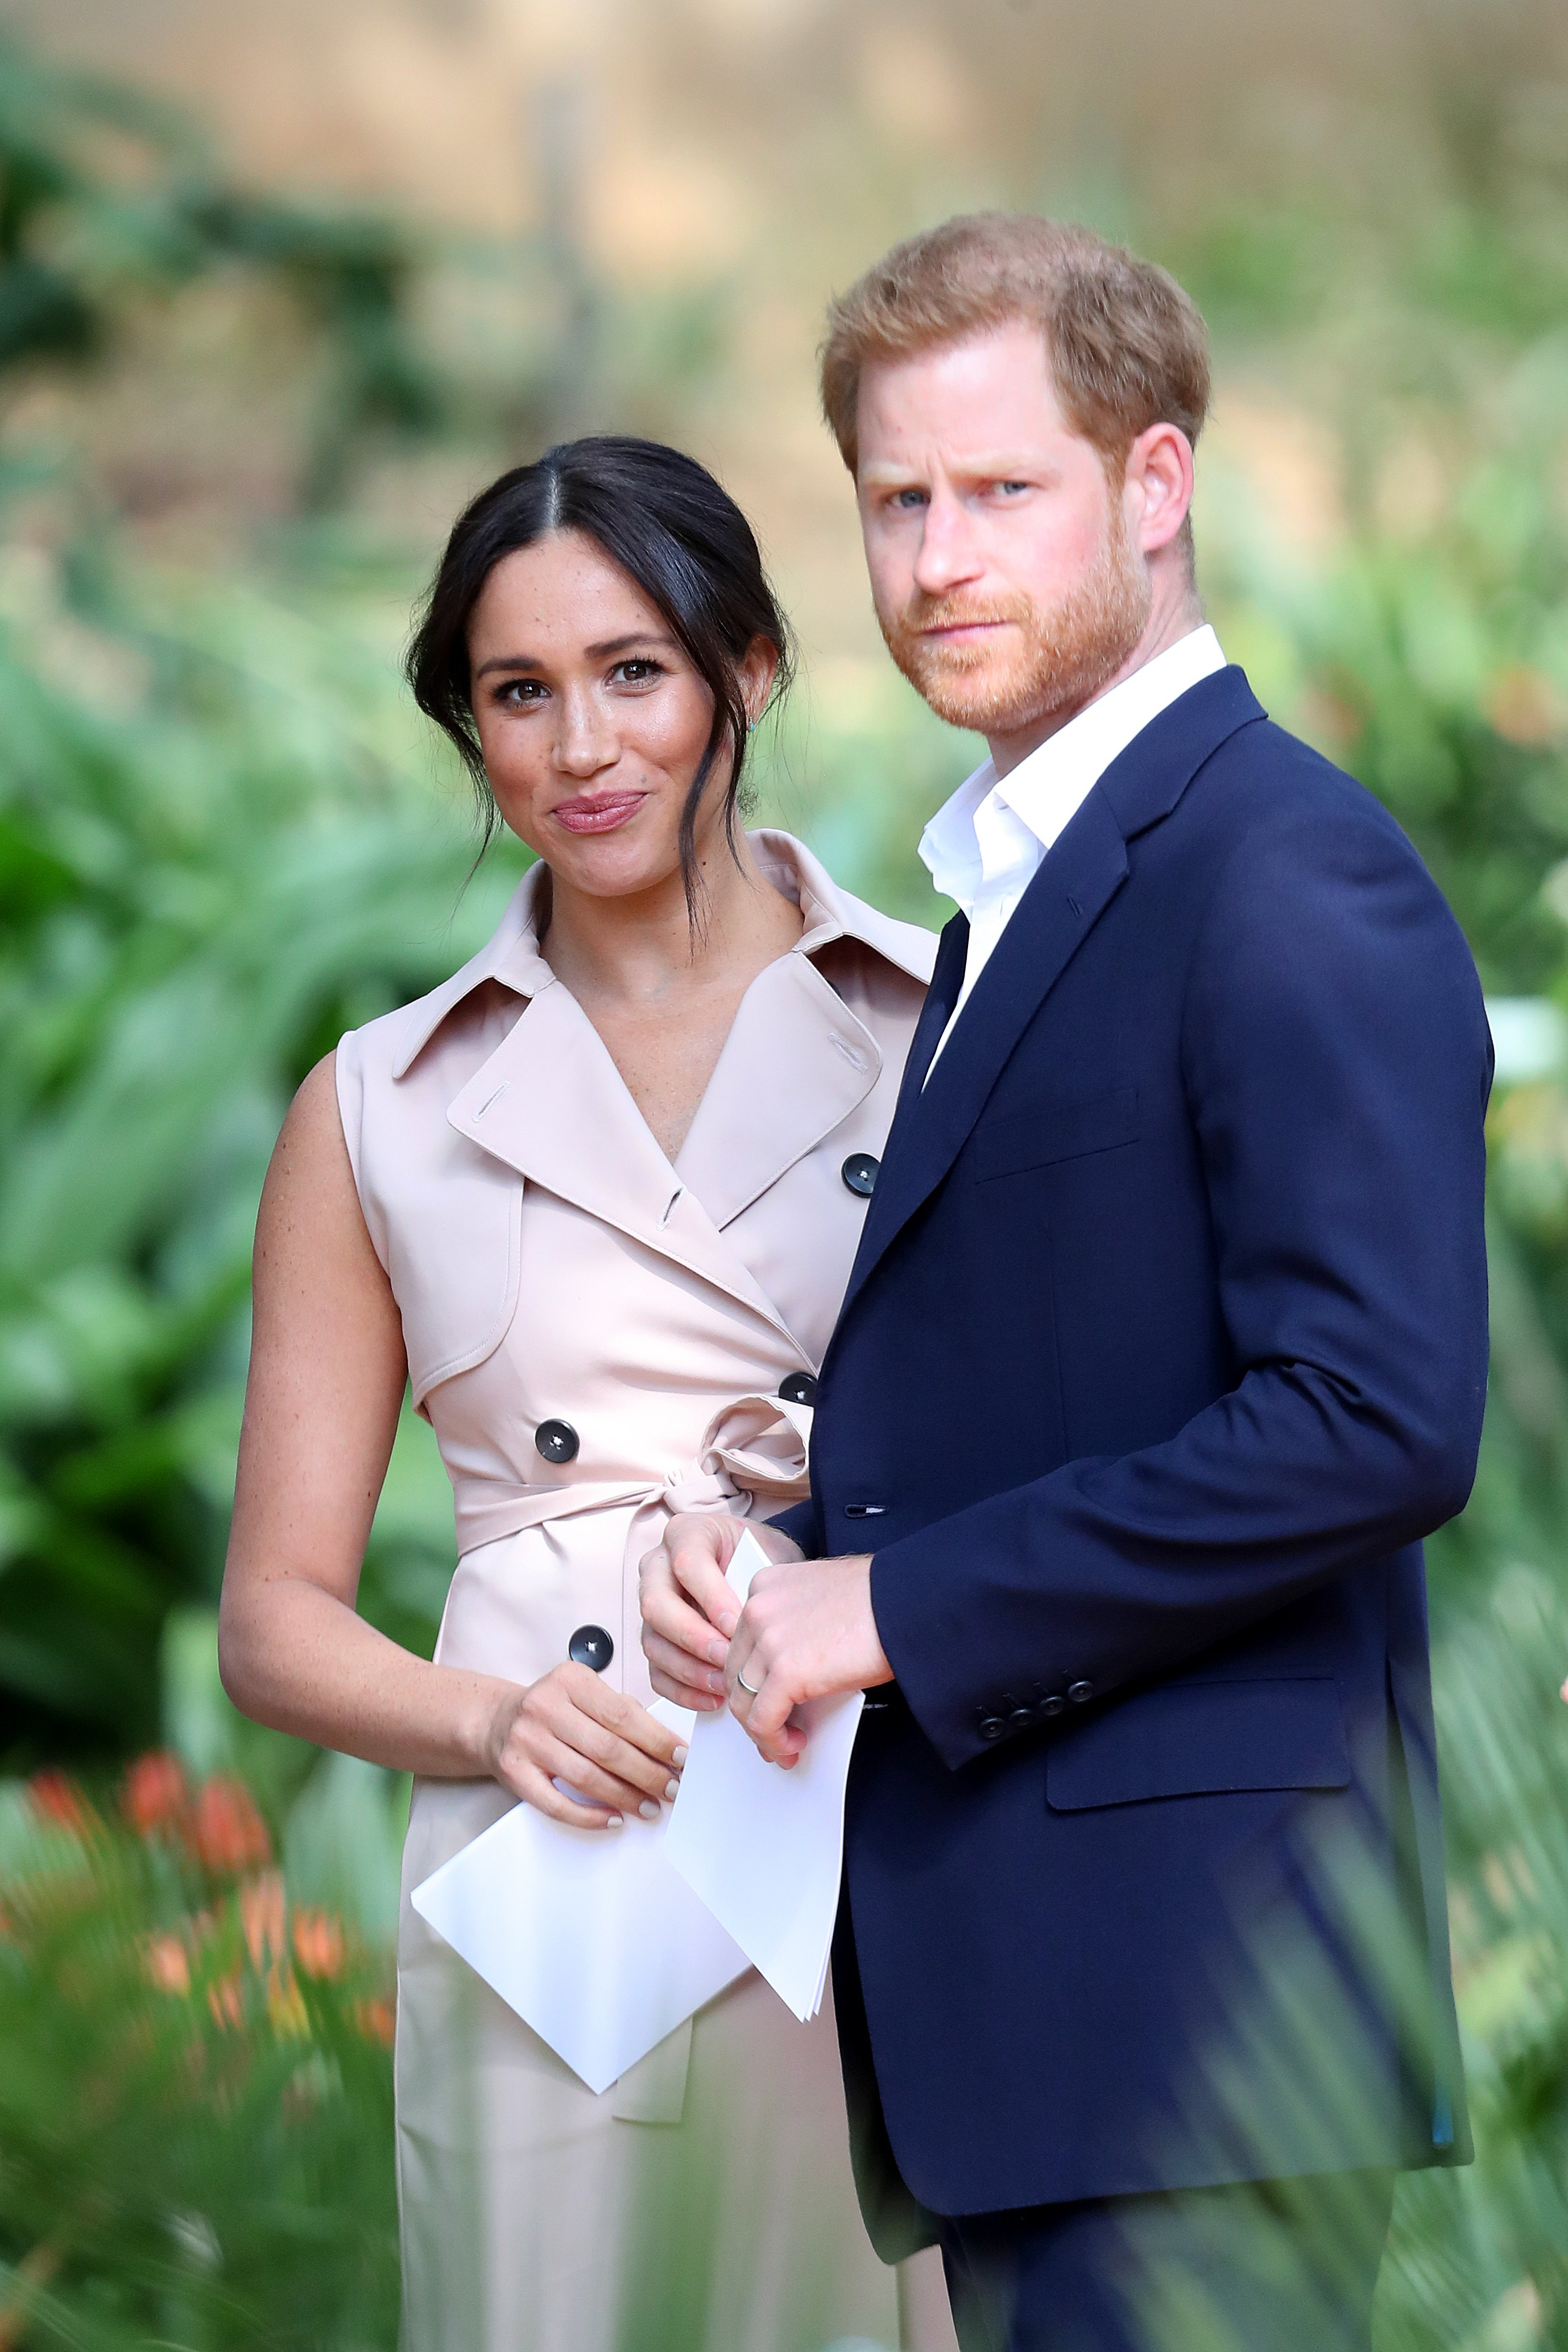 Prince Harry and Meghan Markle on October 02, 2019, in Johannesburg, South Africa.  Source: Getty Images.